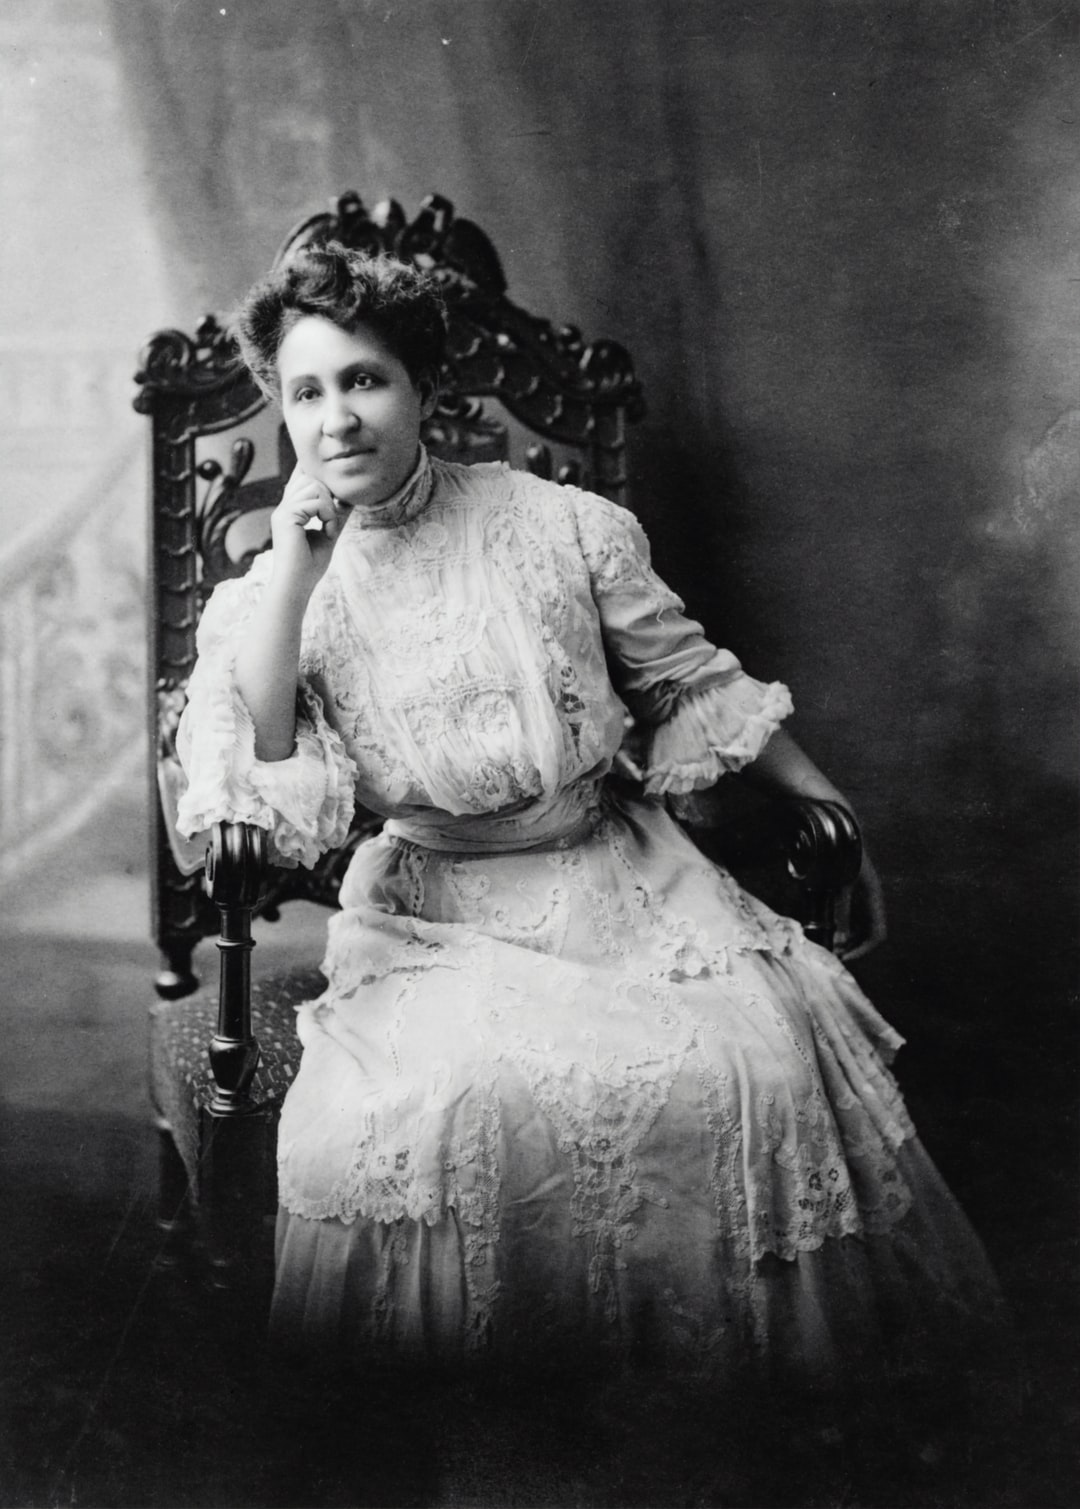 [Mary Church Terrell, three-quarter length portrait, seated, facing front]. Photograph from the Biographical Collection, [between 1880 and 1900, printed later]. Library of Congress Prints & Photographs Division.   https://www.loc.gov/item/97500102/